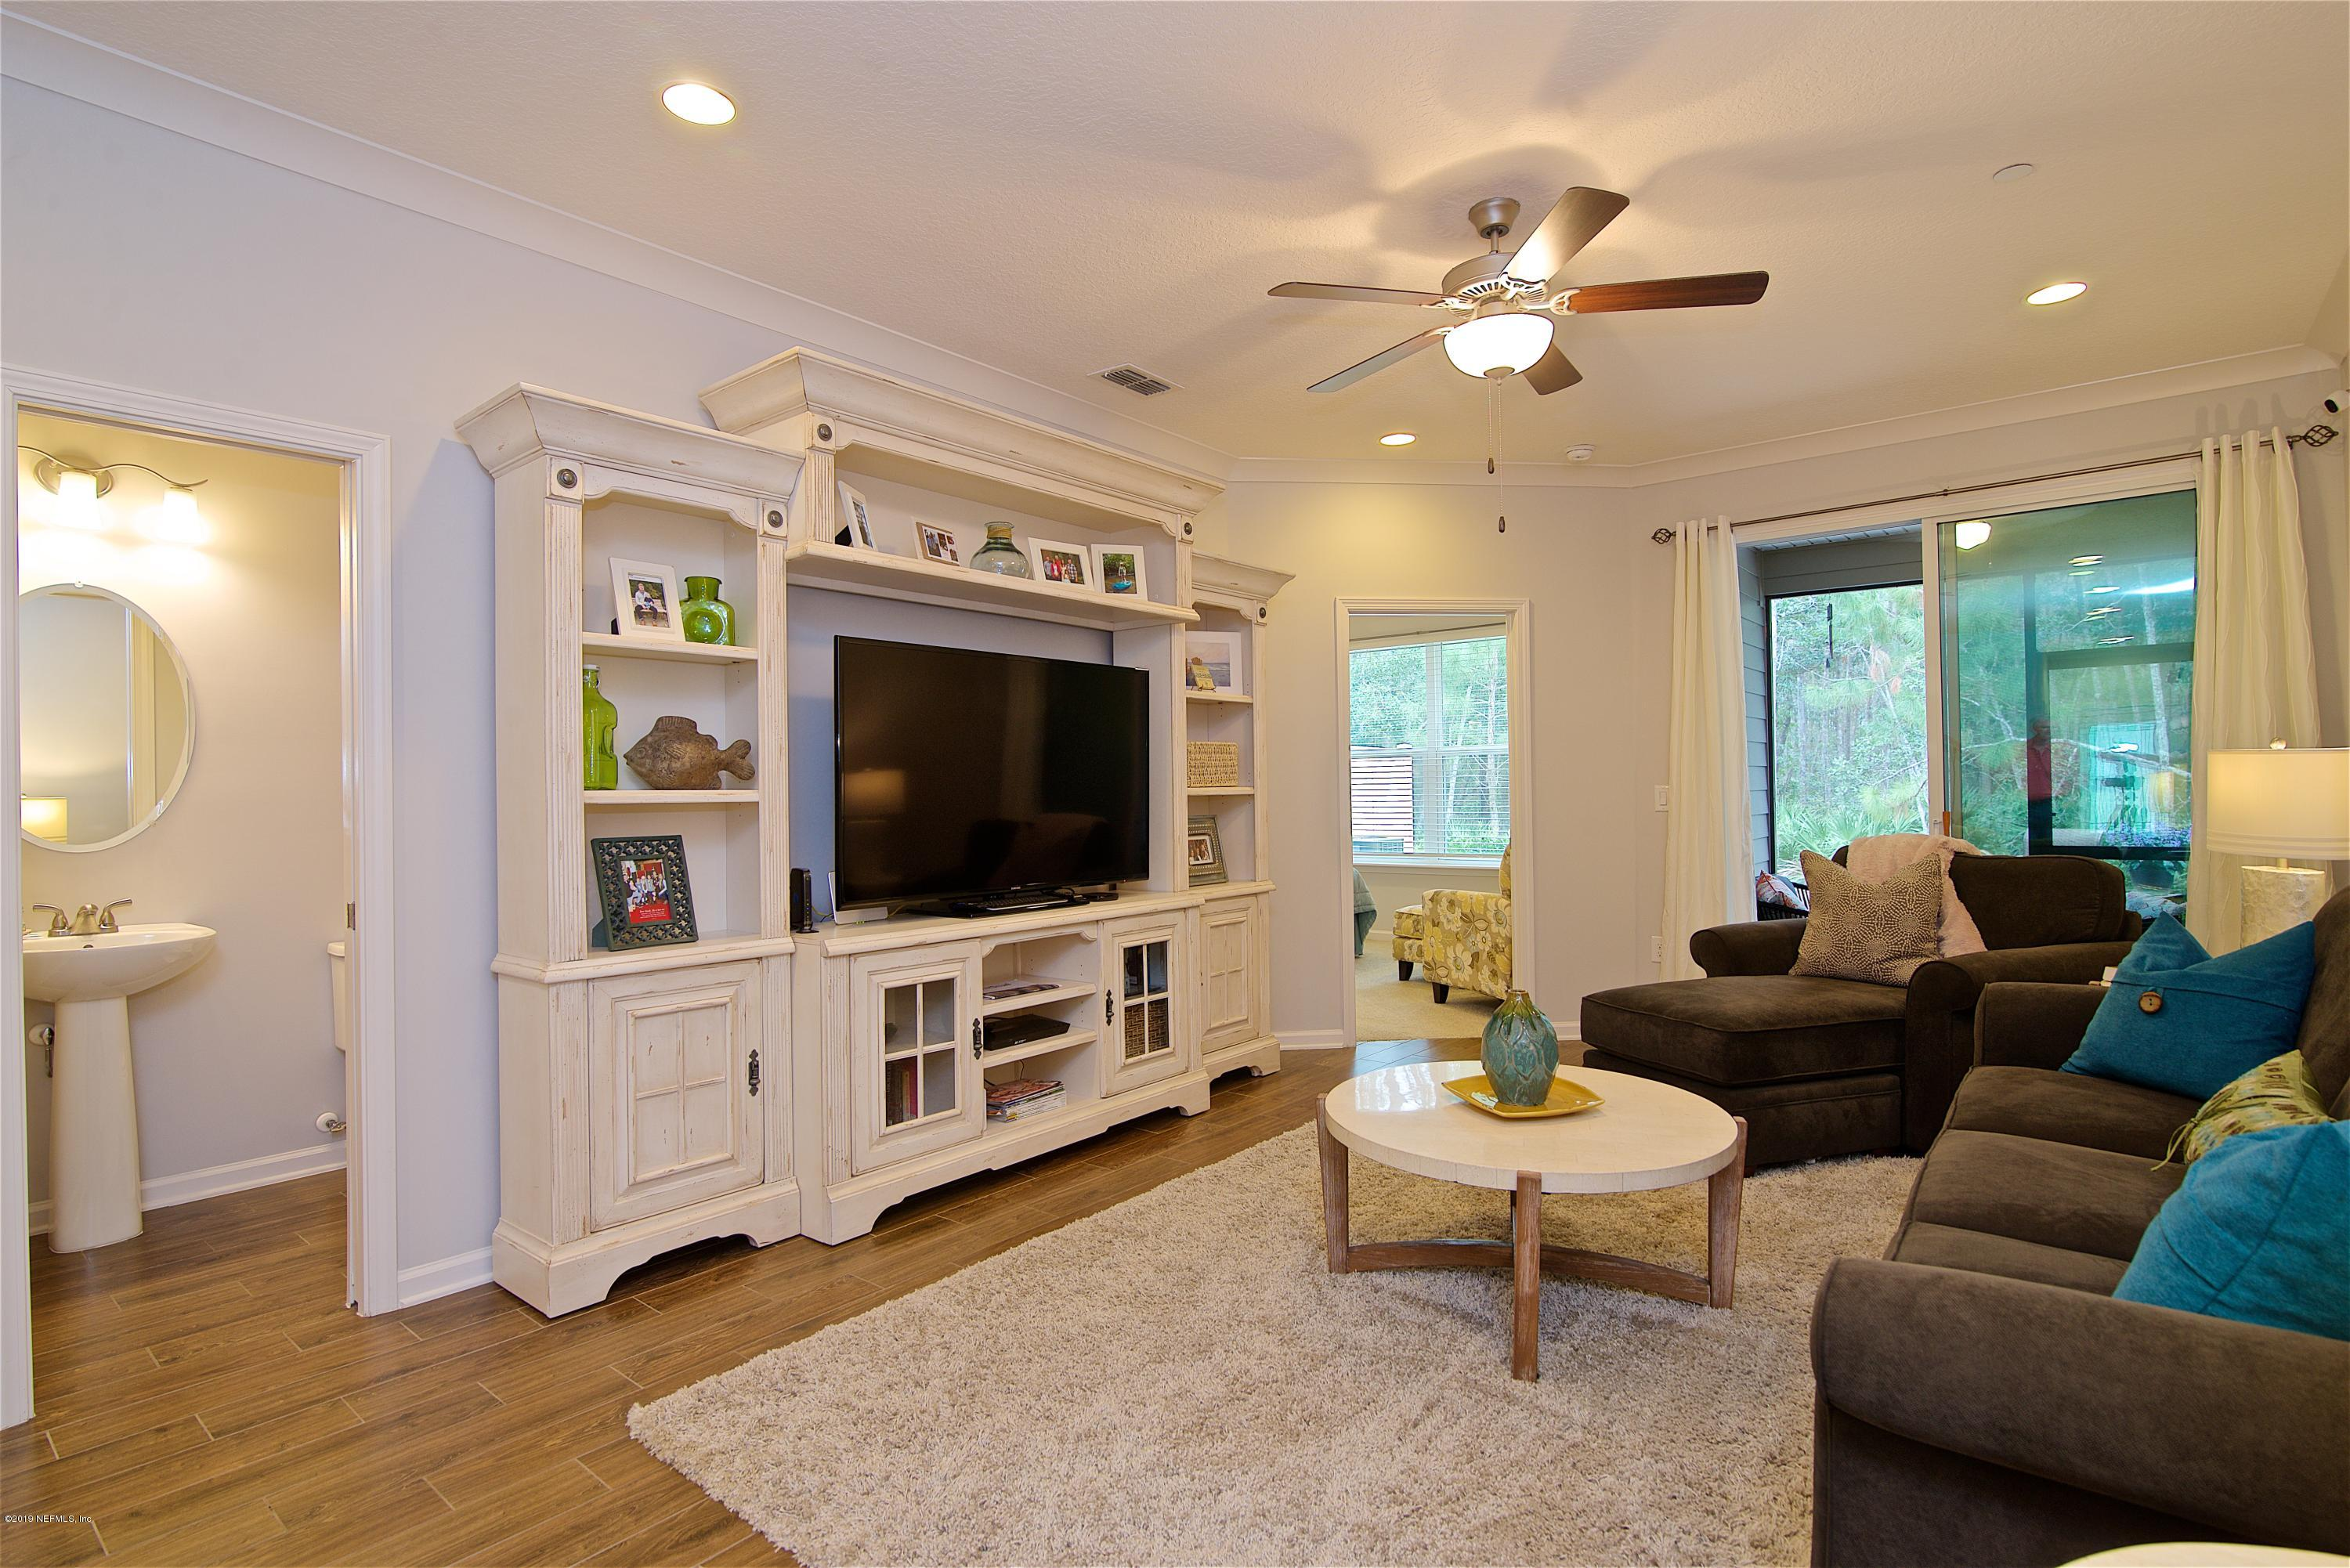 488 COCONUT PALM PKWY PONTE VEDRA BEACH - 14